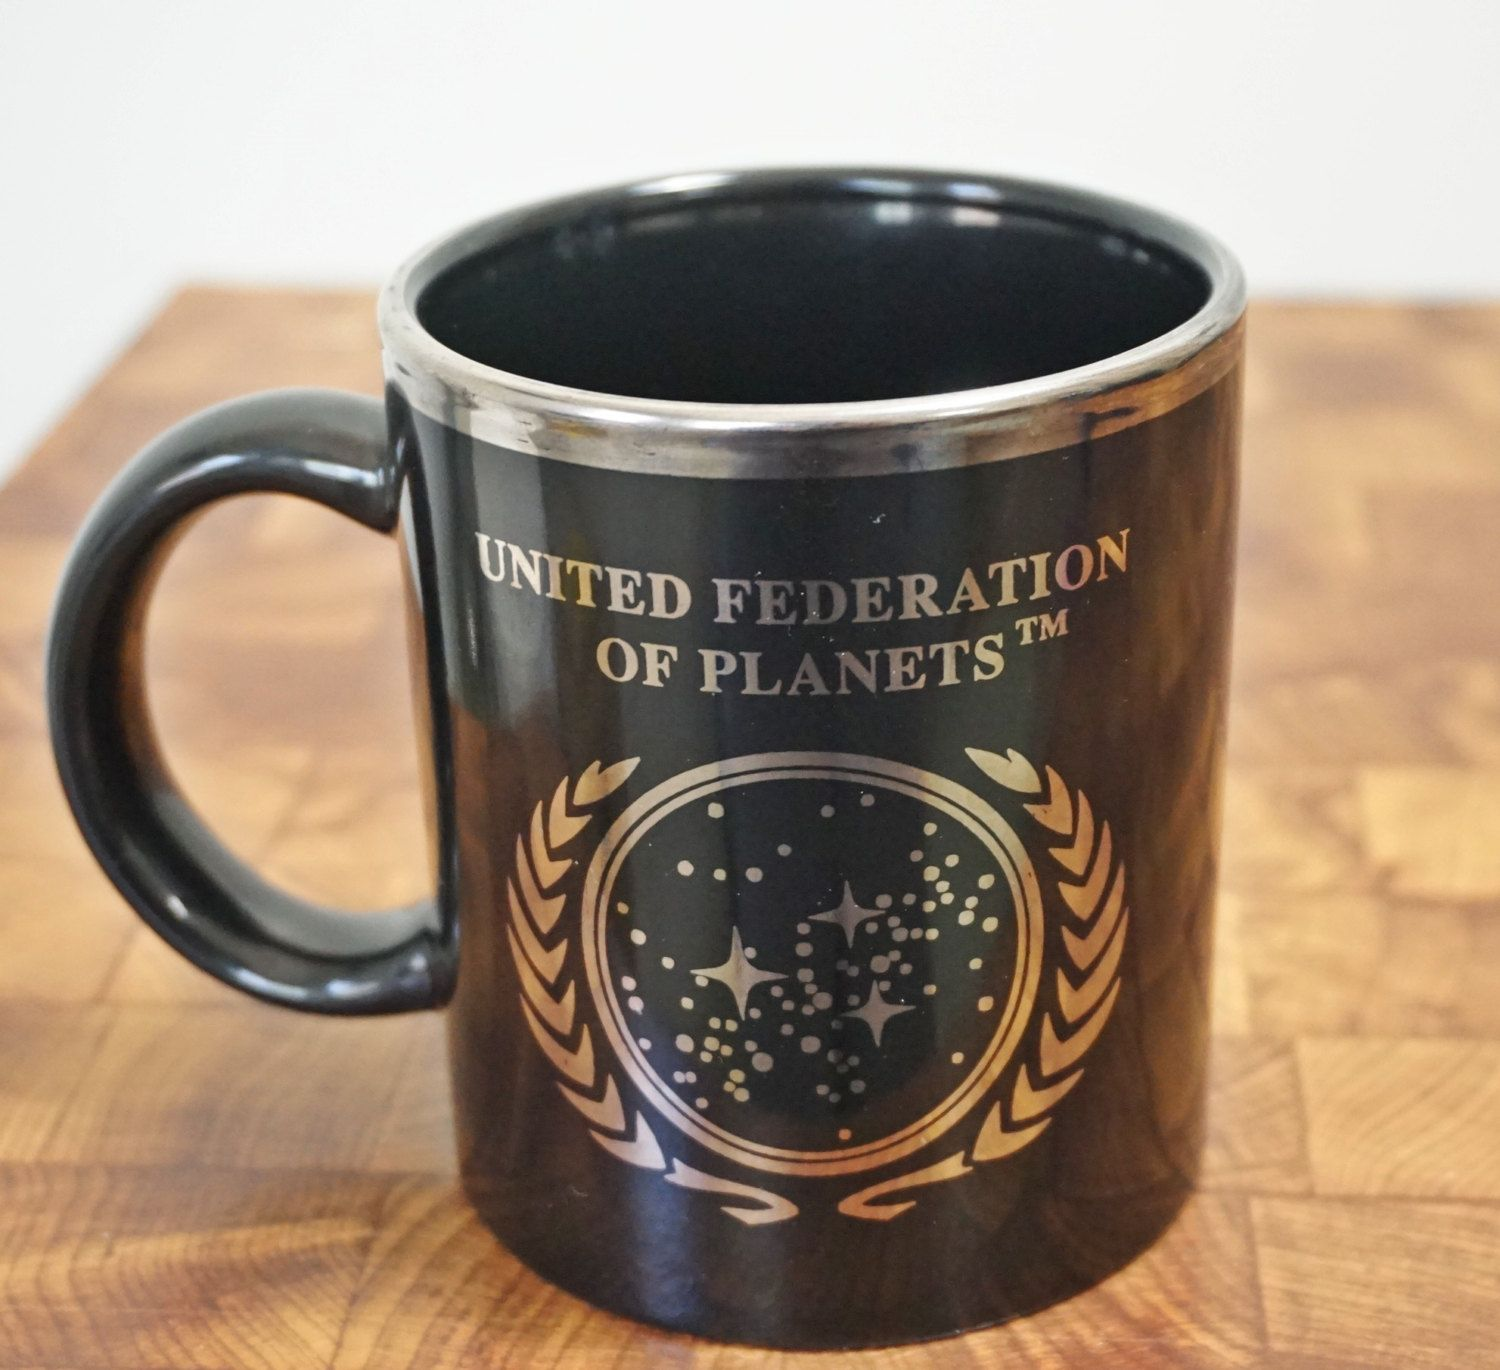 Vintage Star Trek Mug Coffee Cup United Federation Of Planets By Littlerivervintage On Etsy